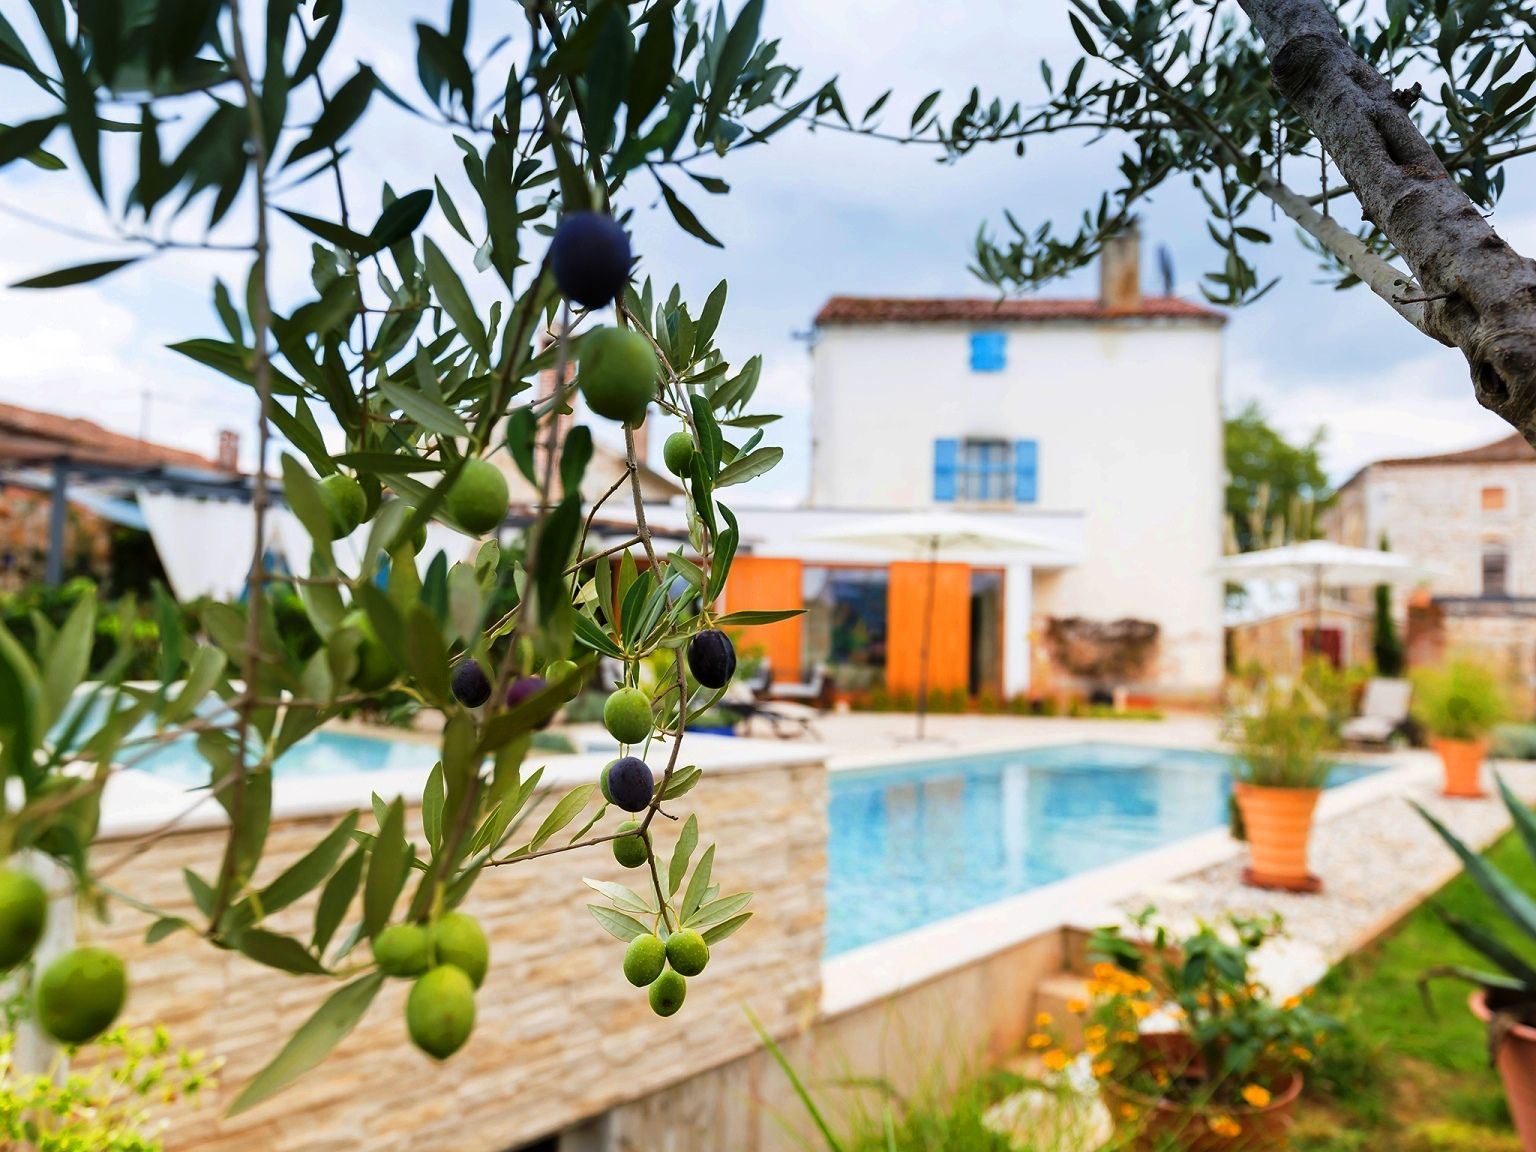 Ferienhaus Mit Pool In Kroatien Porec Villa Maxima Agri With 40 Sqm Private Pool 2 Bedrooms 2